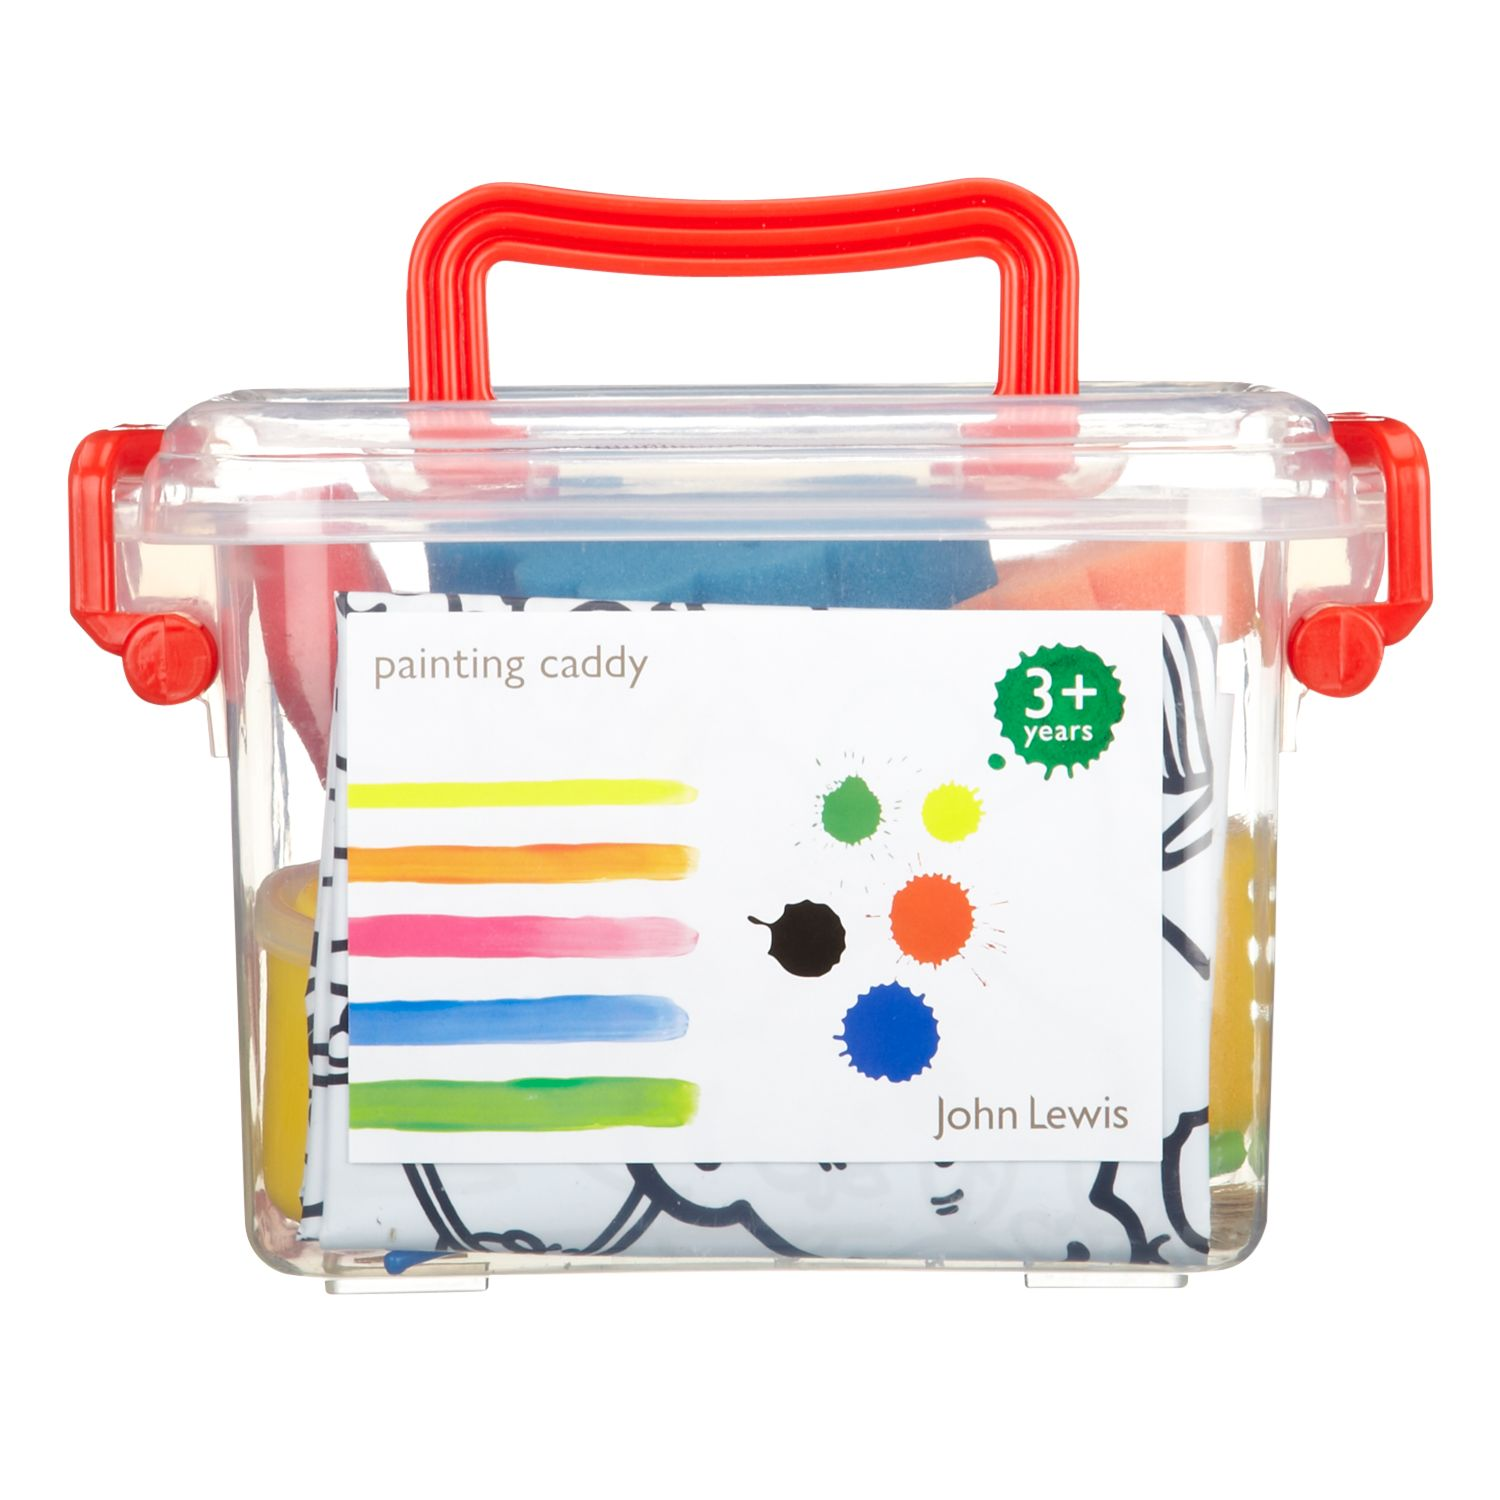 John Lewis Painting Caddy Set